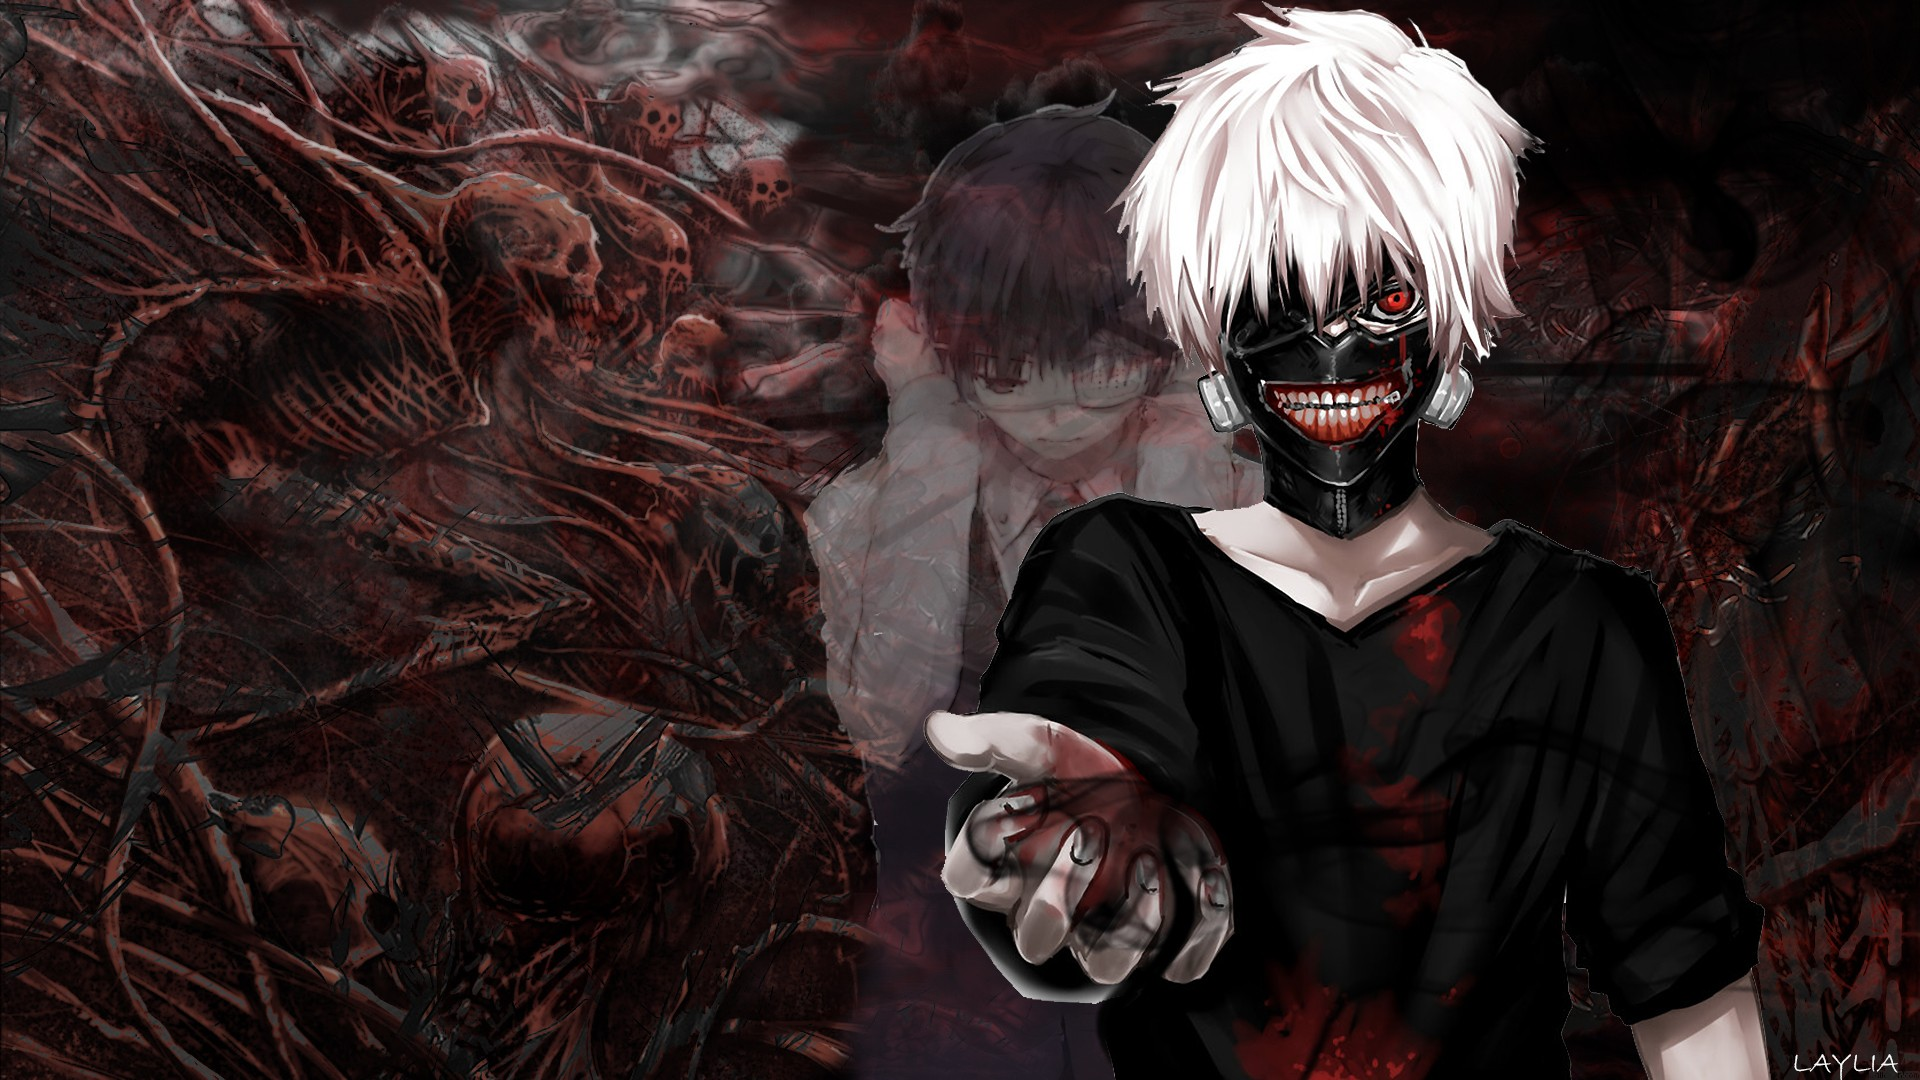 Cool Wallpaper Mac Tokyo Ghoul - 142258-tokyo-ghoul-wallpaper-hd-1920x1080-for-4k  Perfect Image Reference_543225.jpg